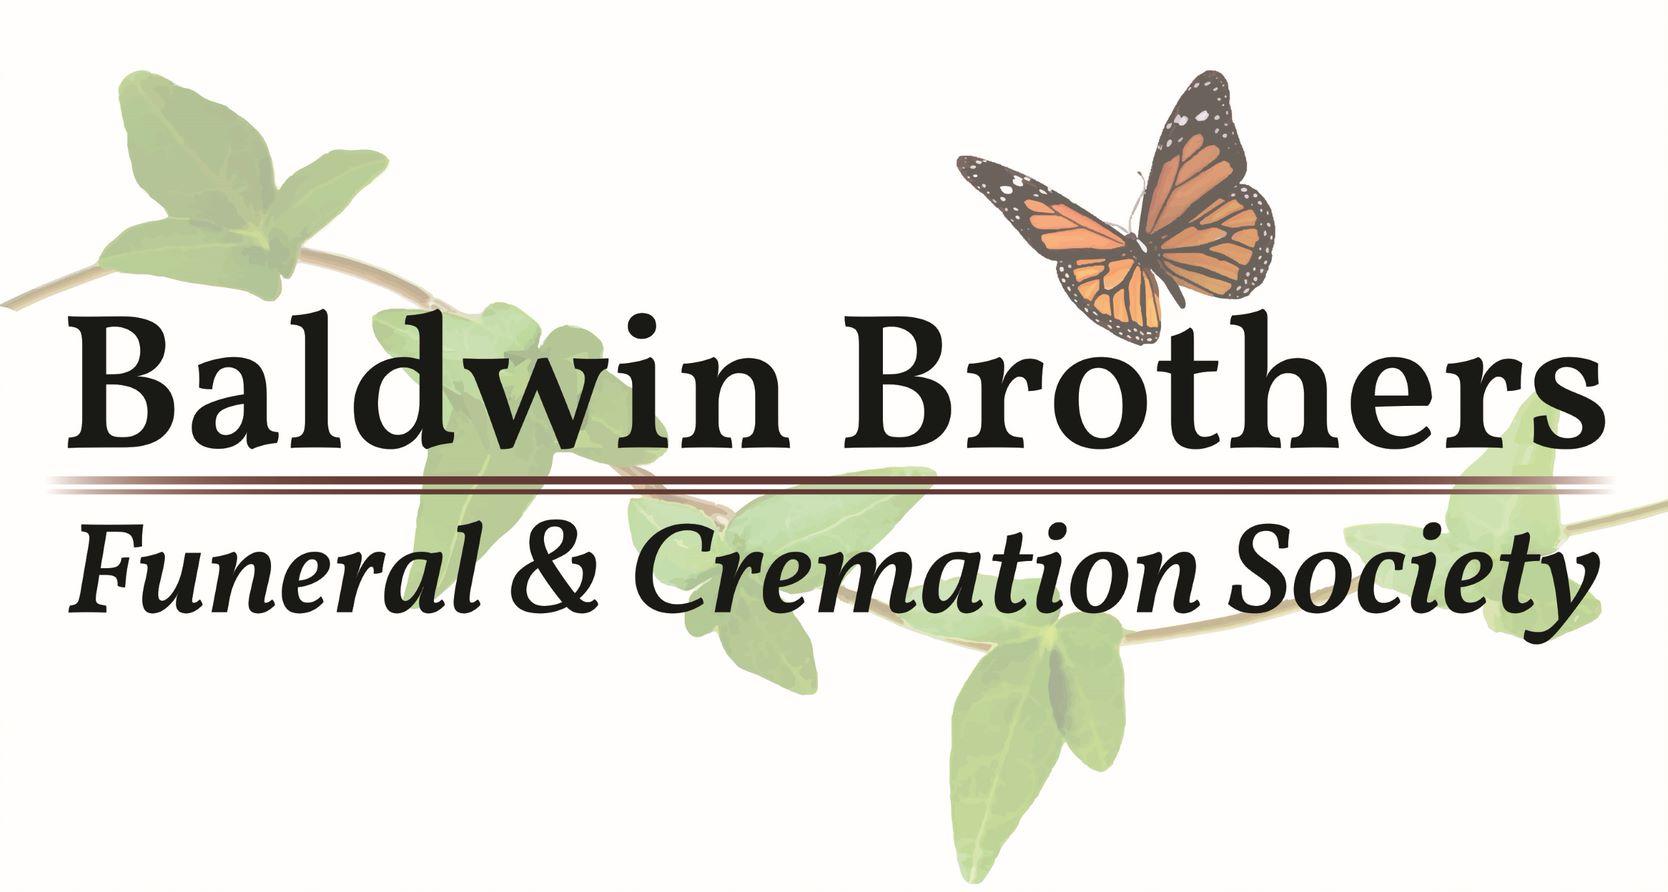 Baldwin Brothers Funeral and Cremation Society